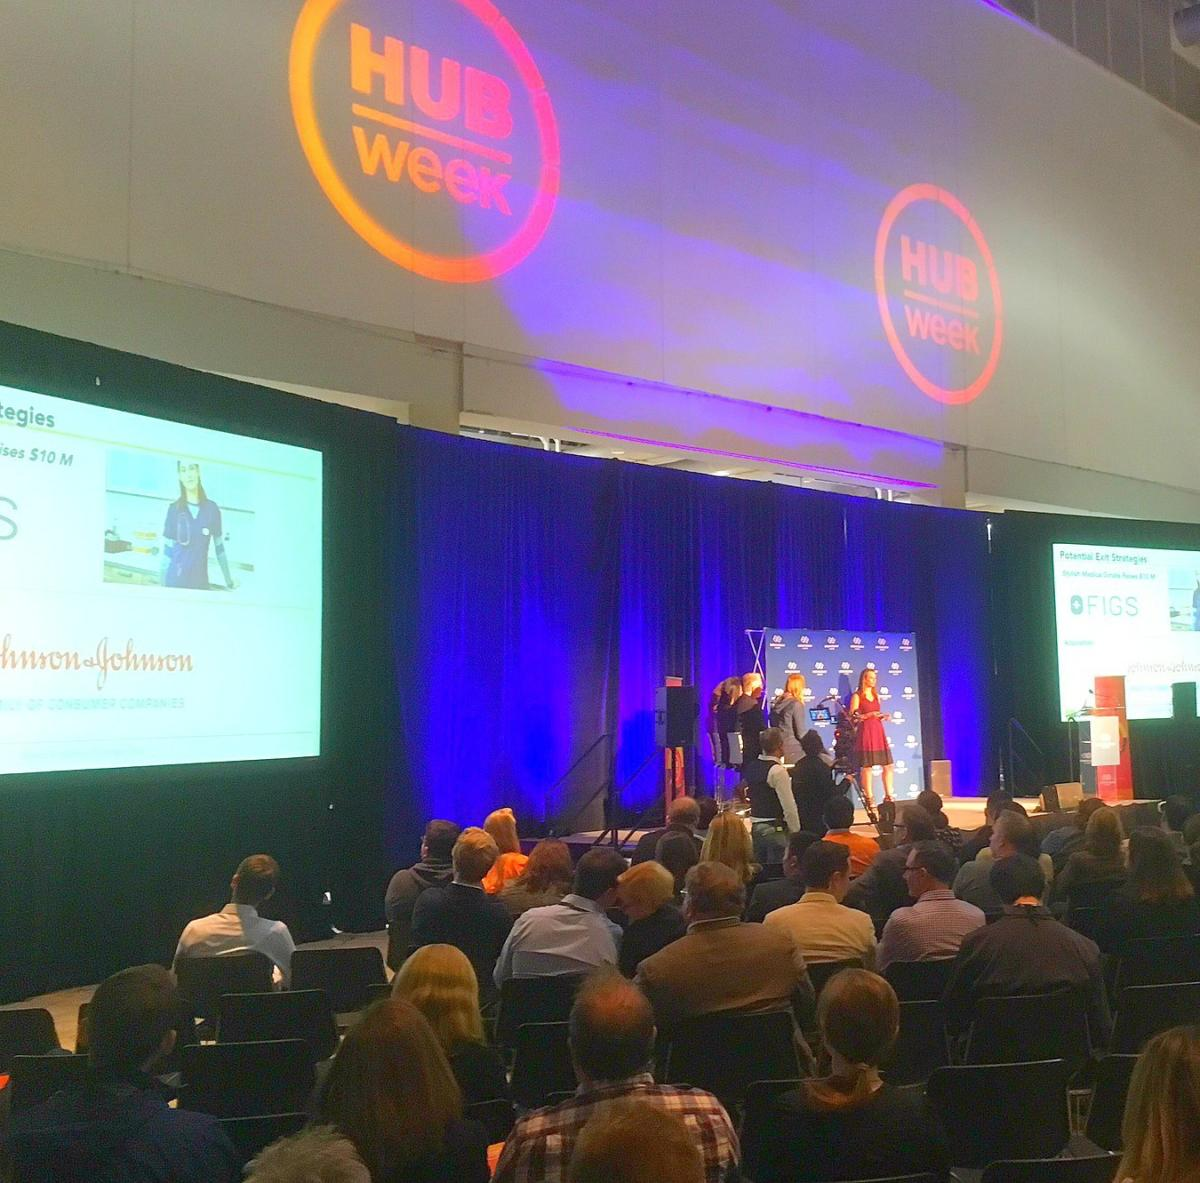 A few cool tech startups I came across at HUBweek